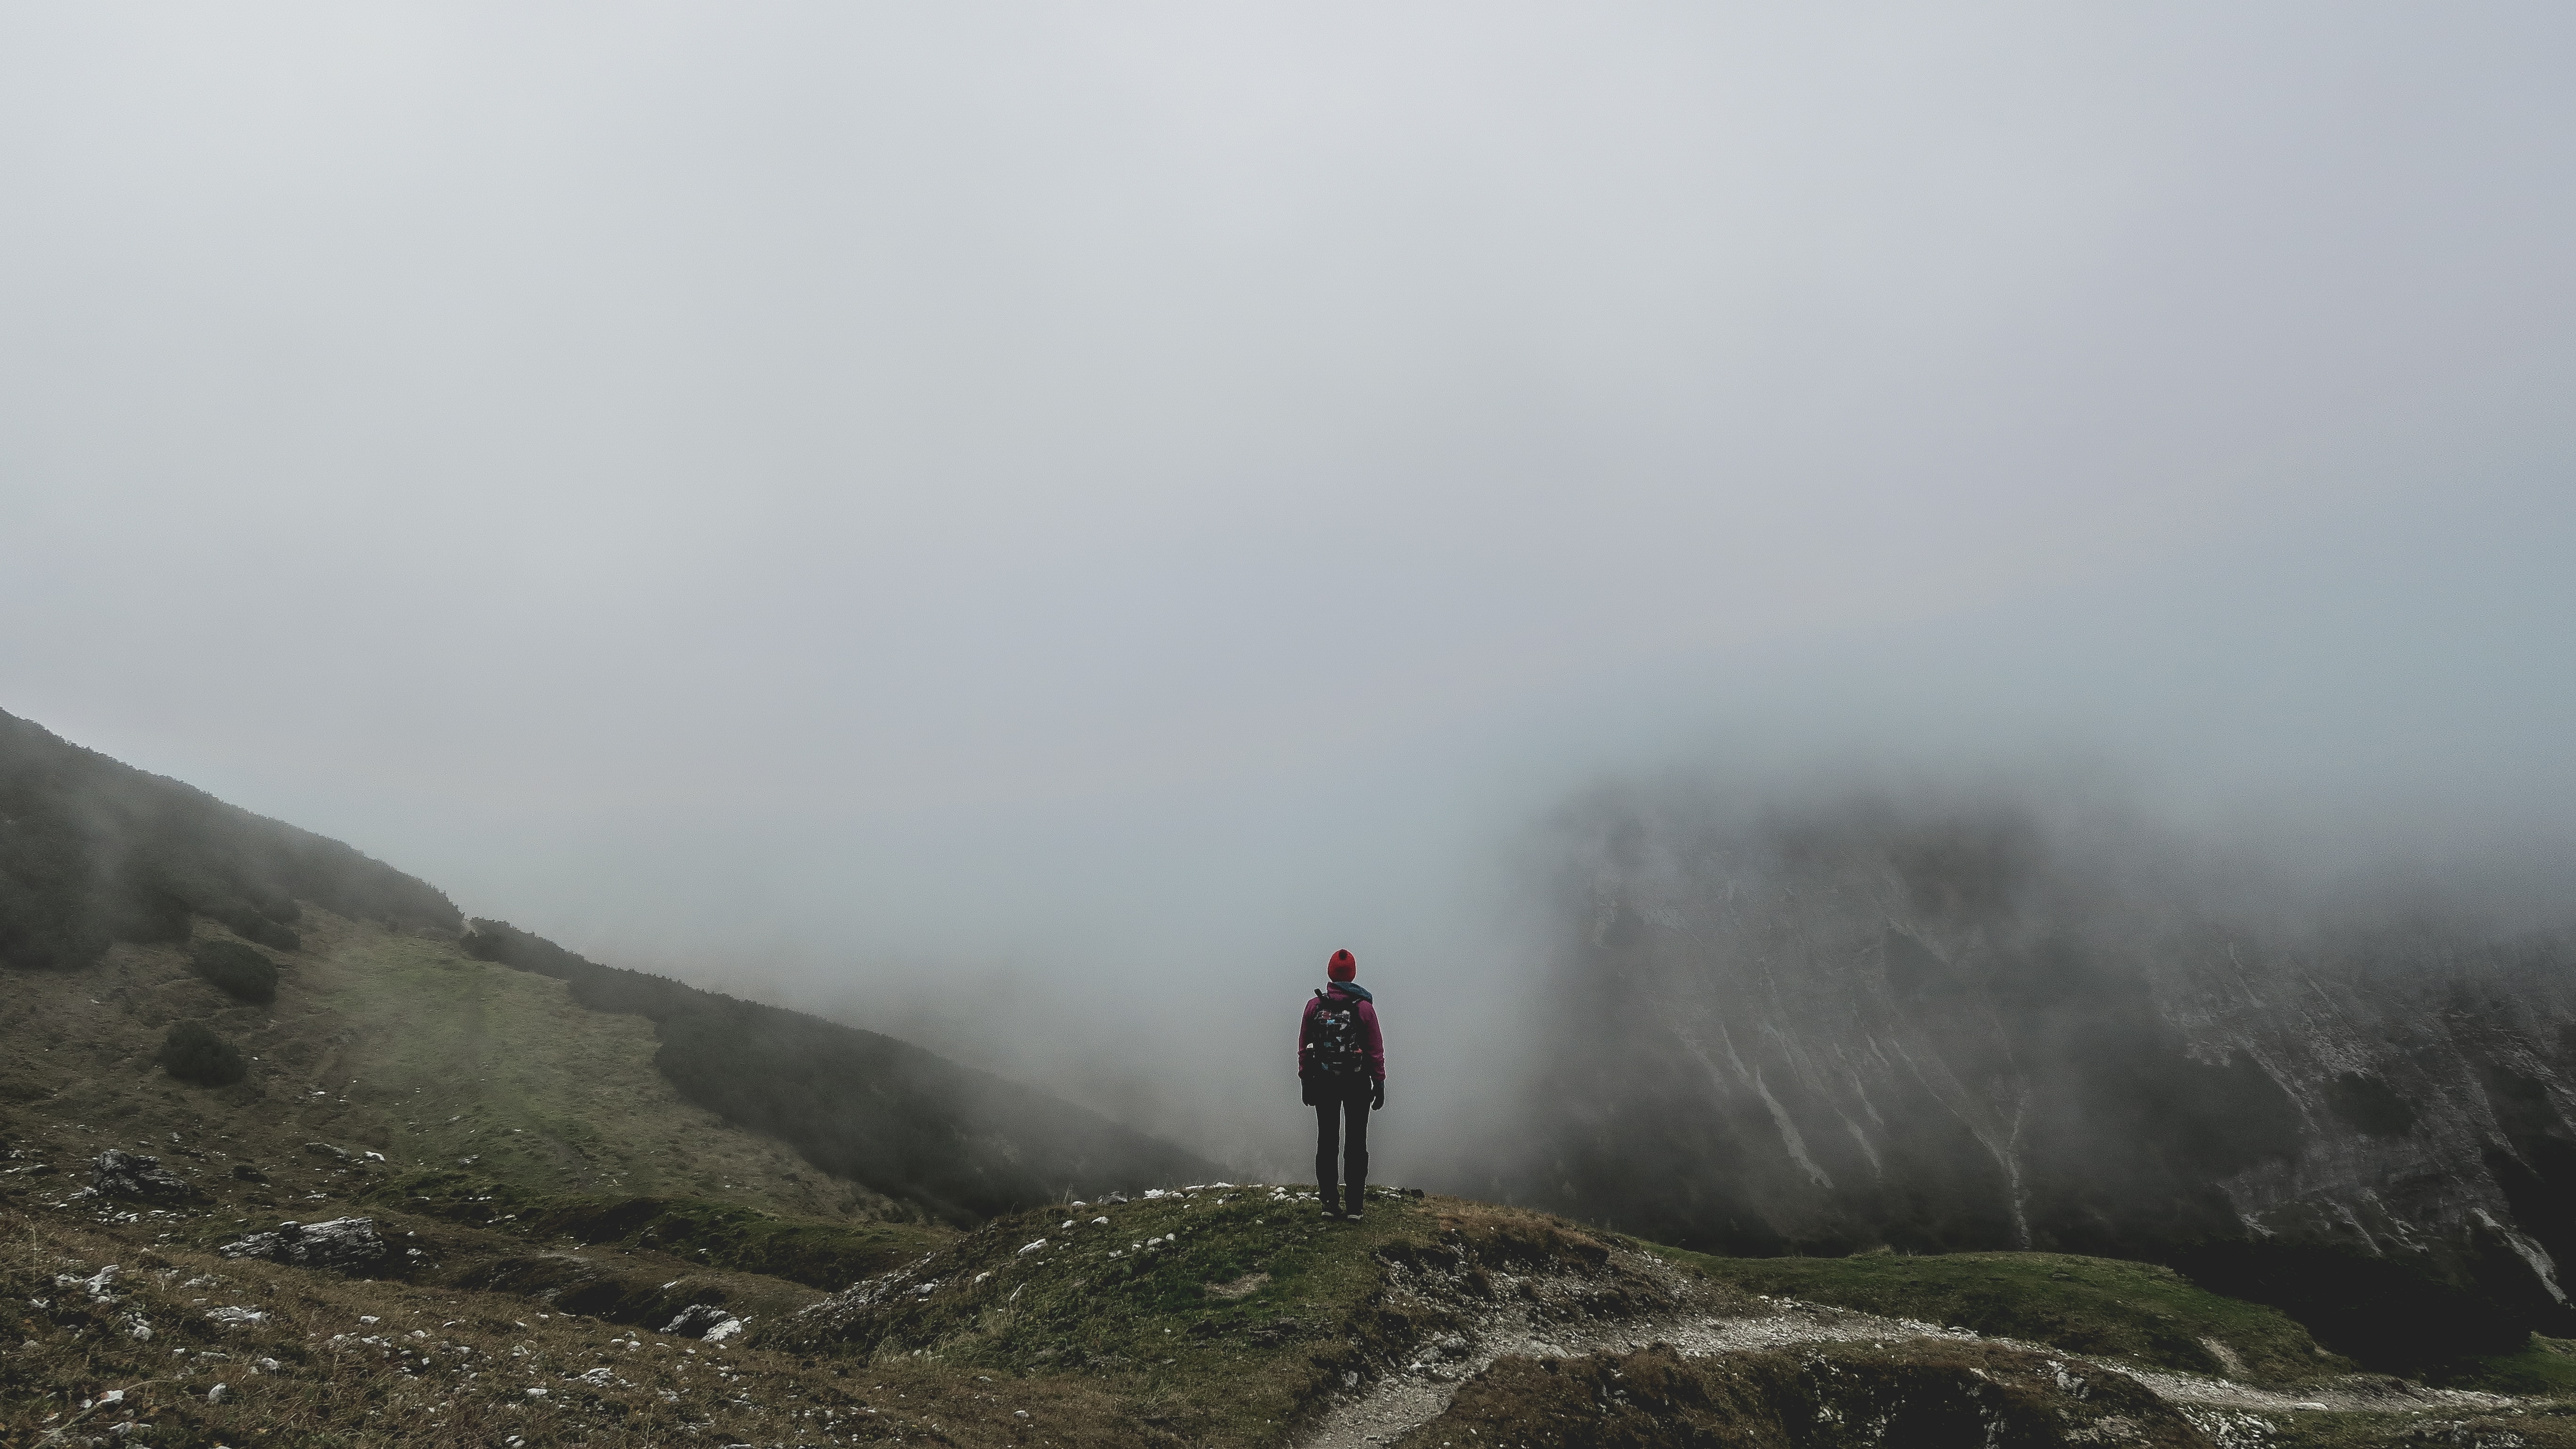 Hiker looks out at foggy mountains on a small rocky hill